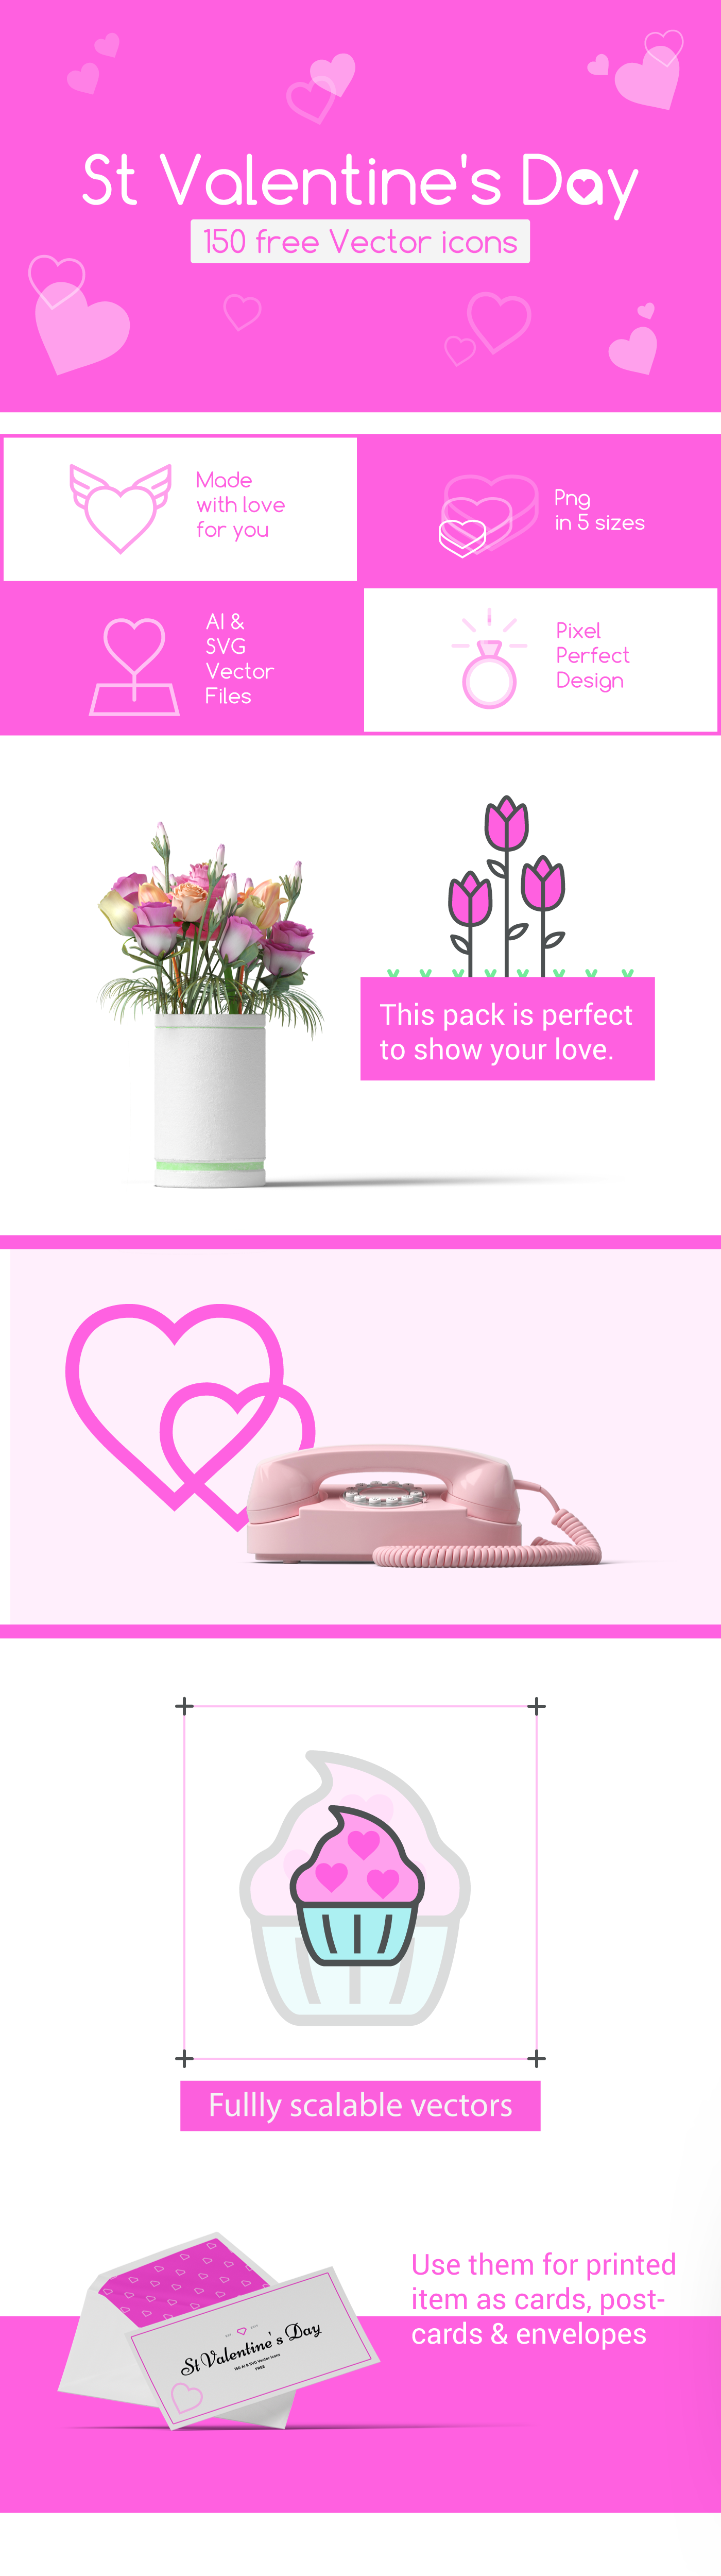 st_valentines_day_free_icons_1